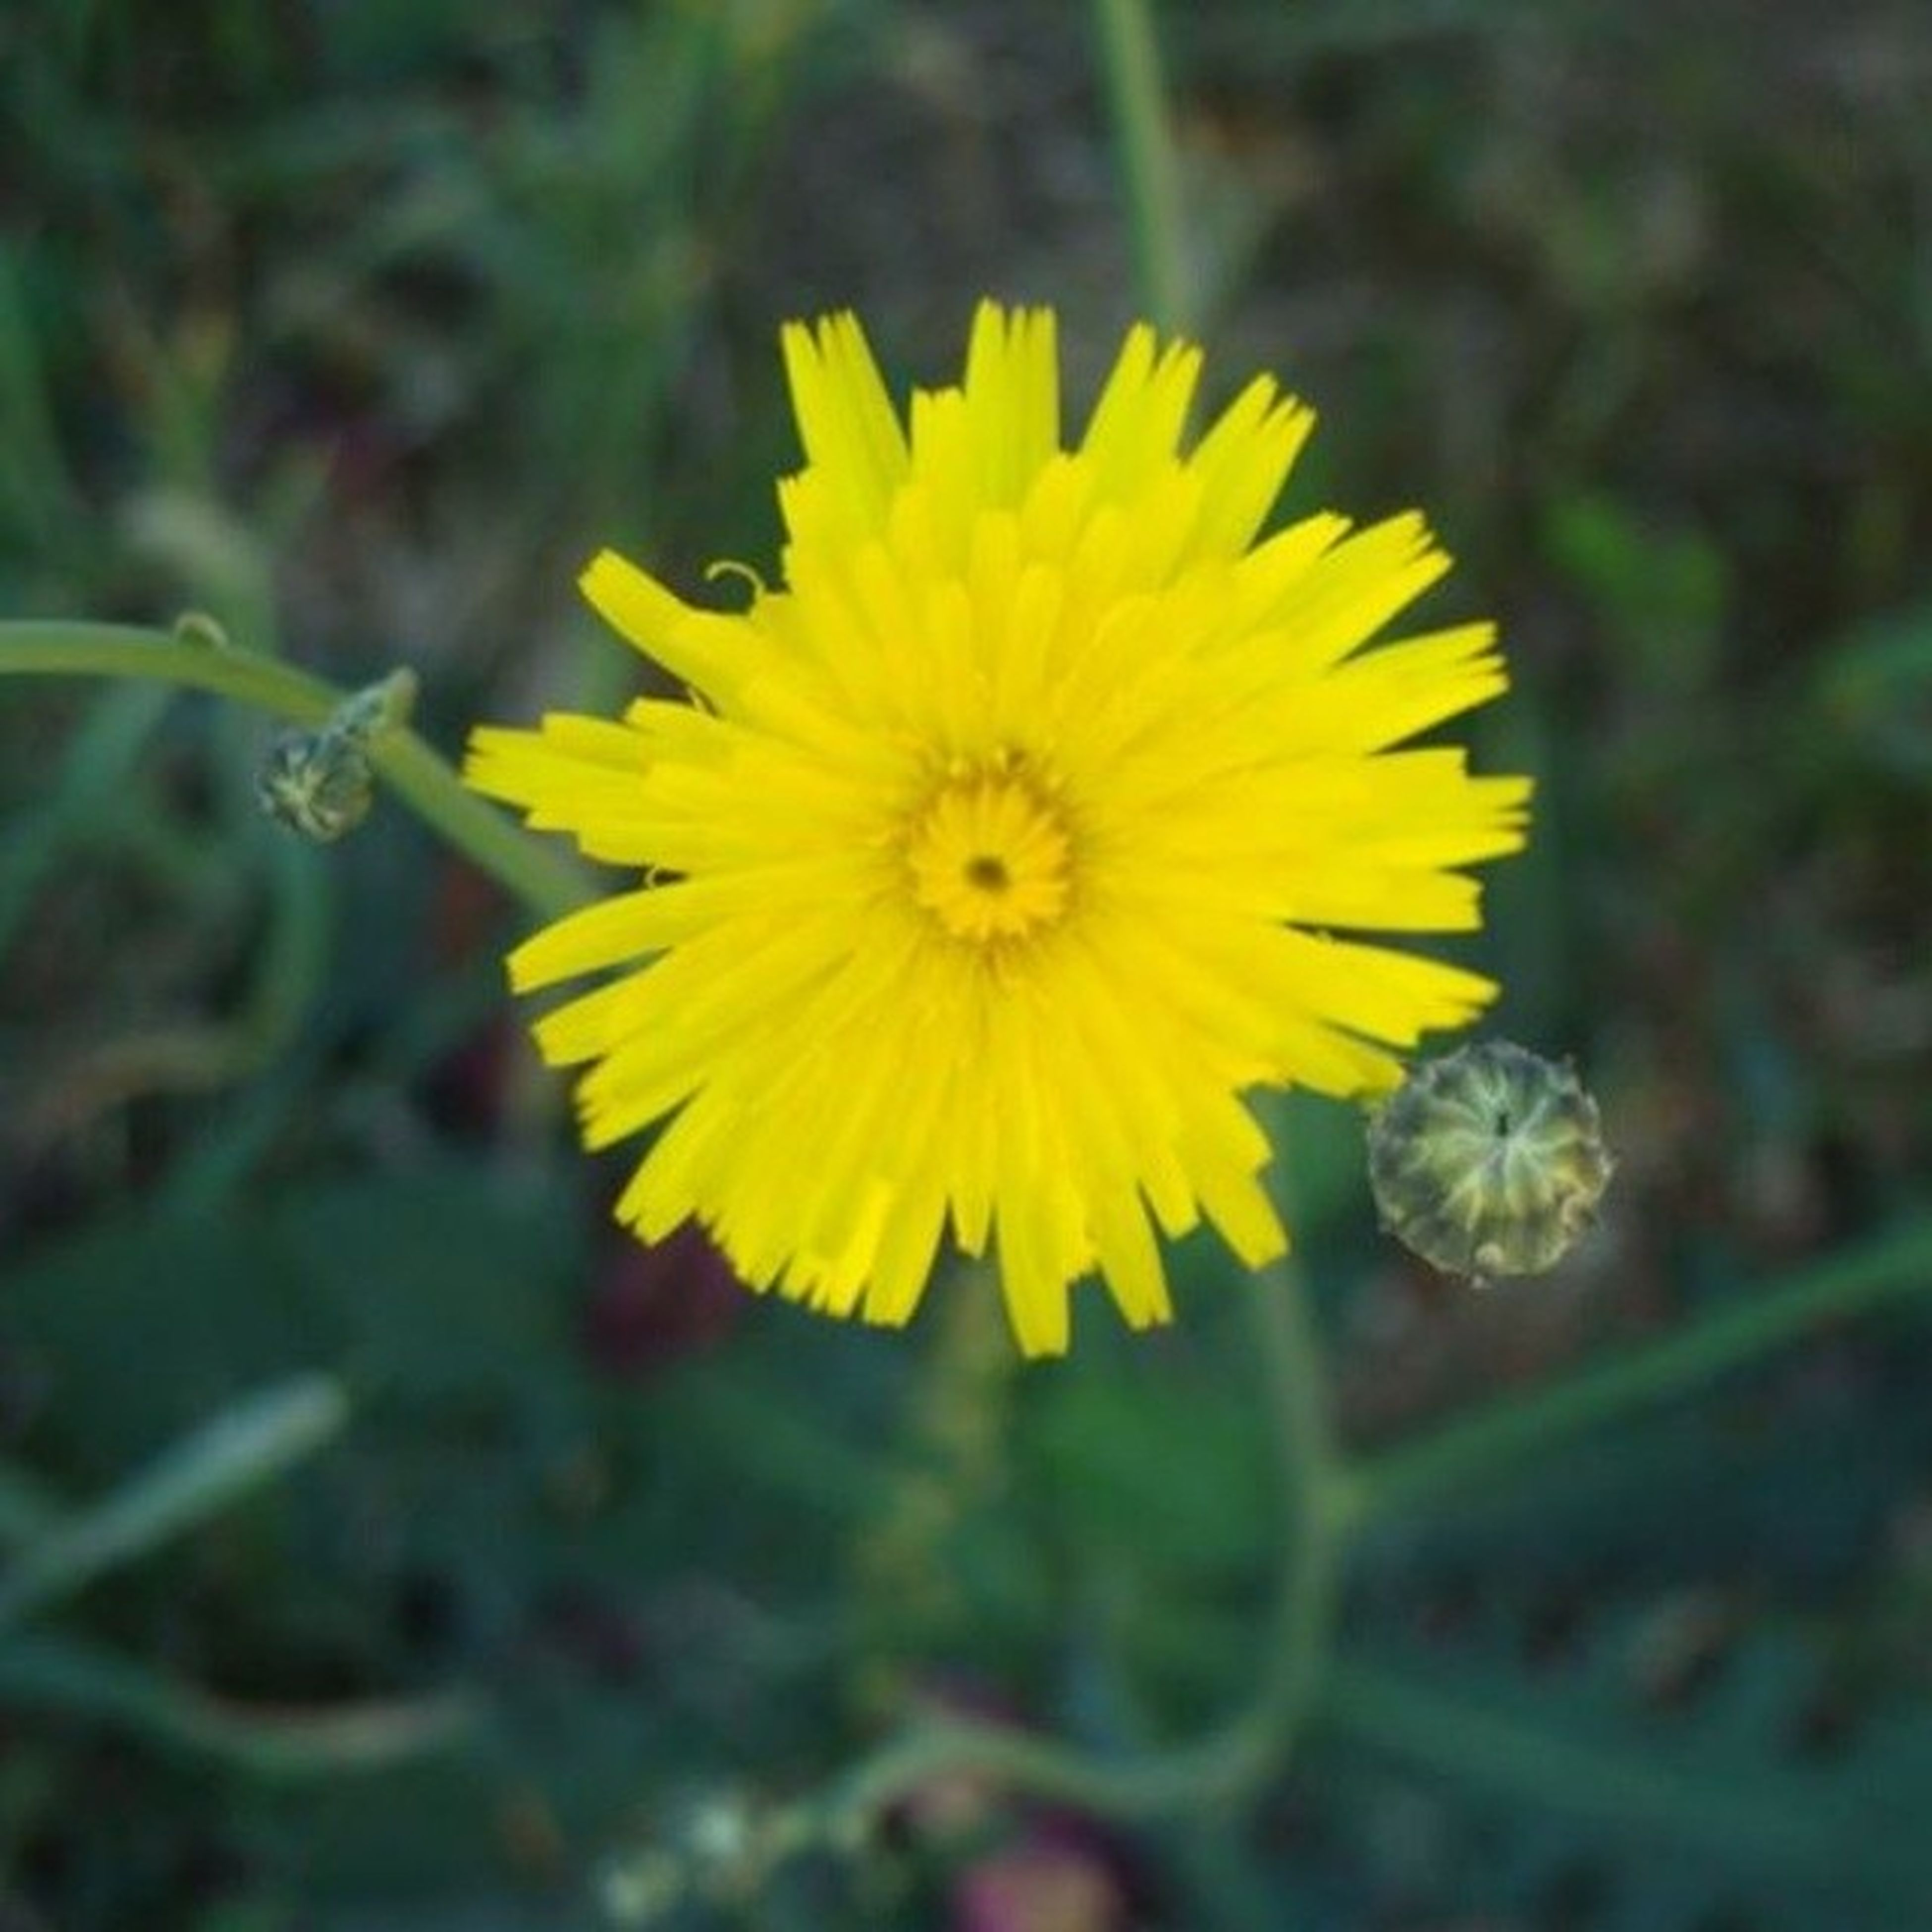 flower, yellow, freshness, petal, fragility, flower head, growth, close-up, beauty in nature, focus on foreground, blooming, single flower, pollen, nature, plant, in bloom, selective focus, day, outdoors, no people